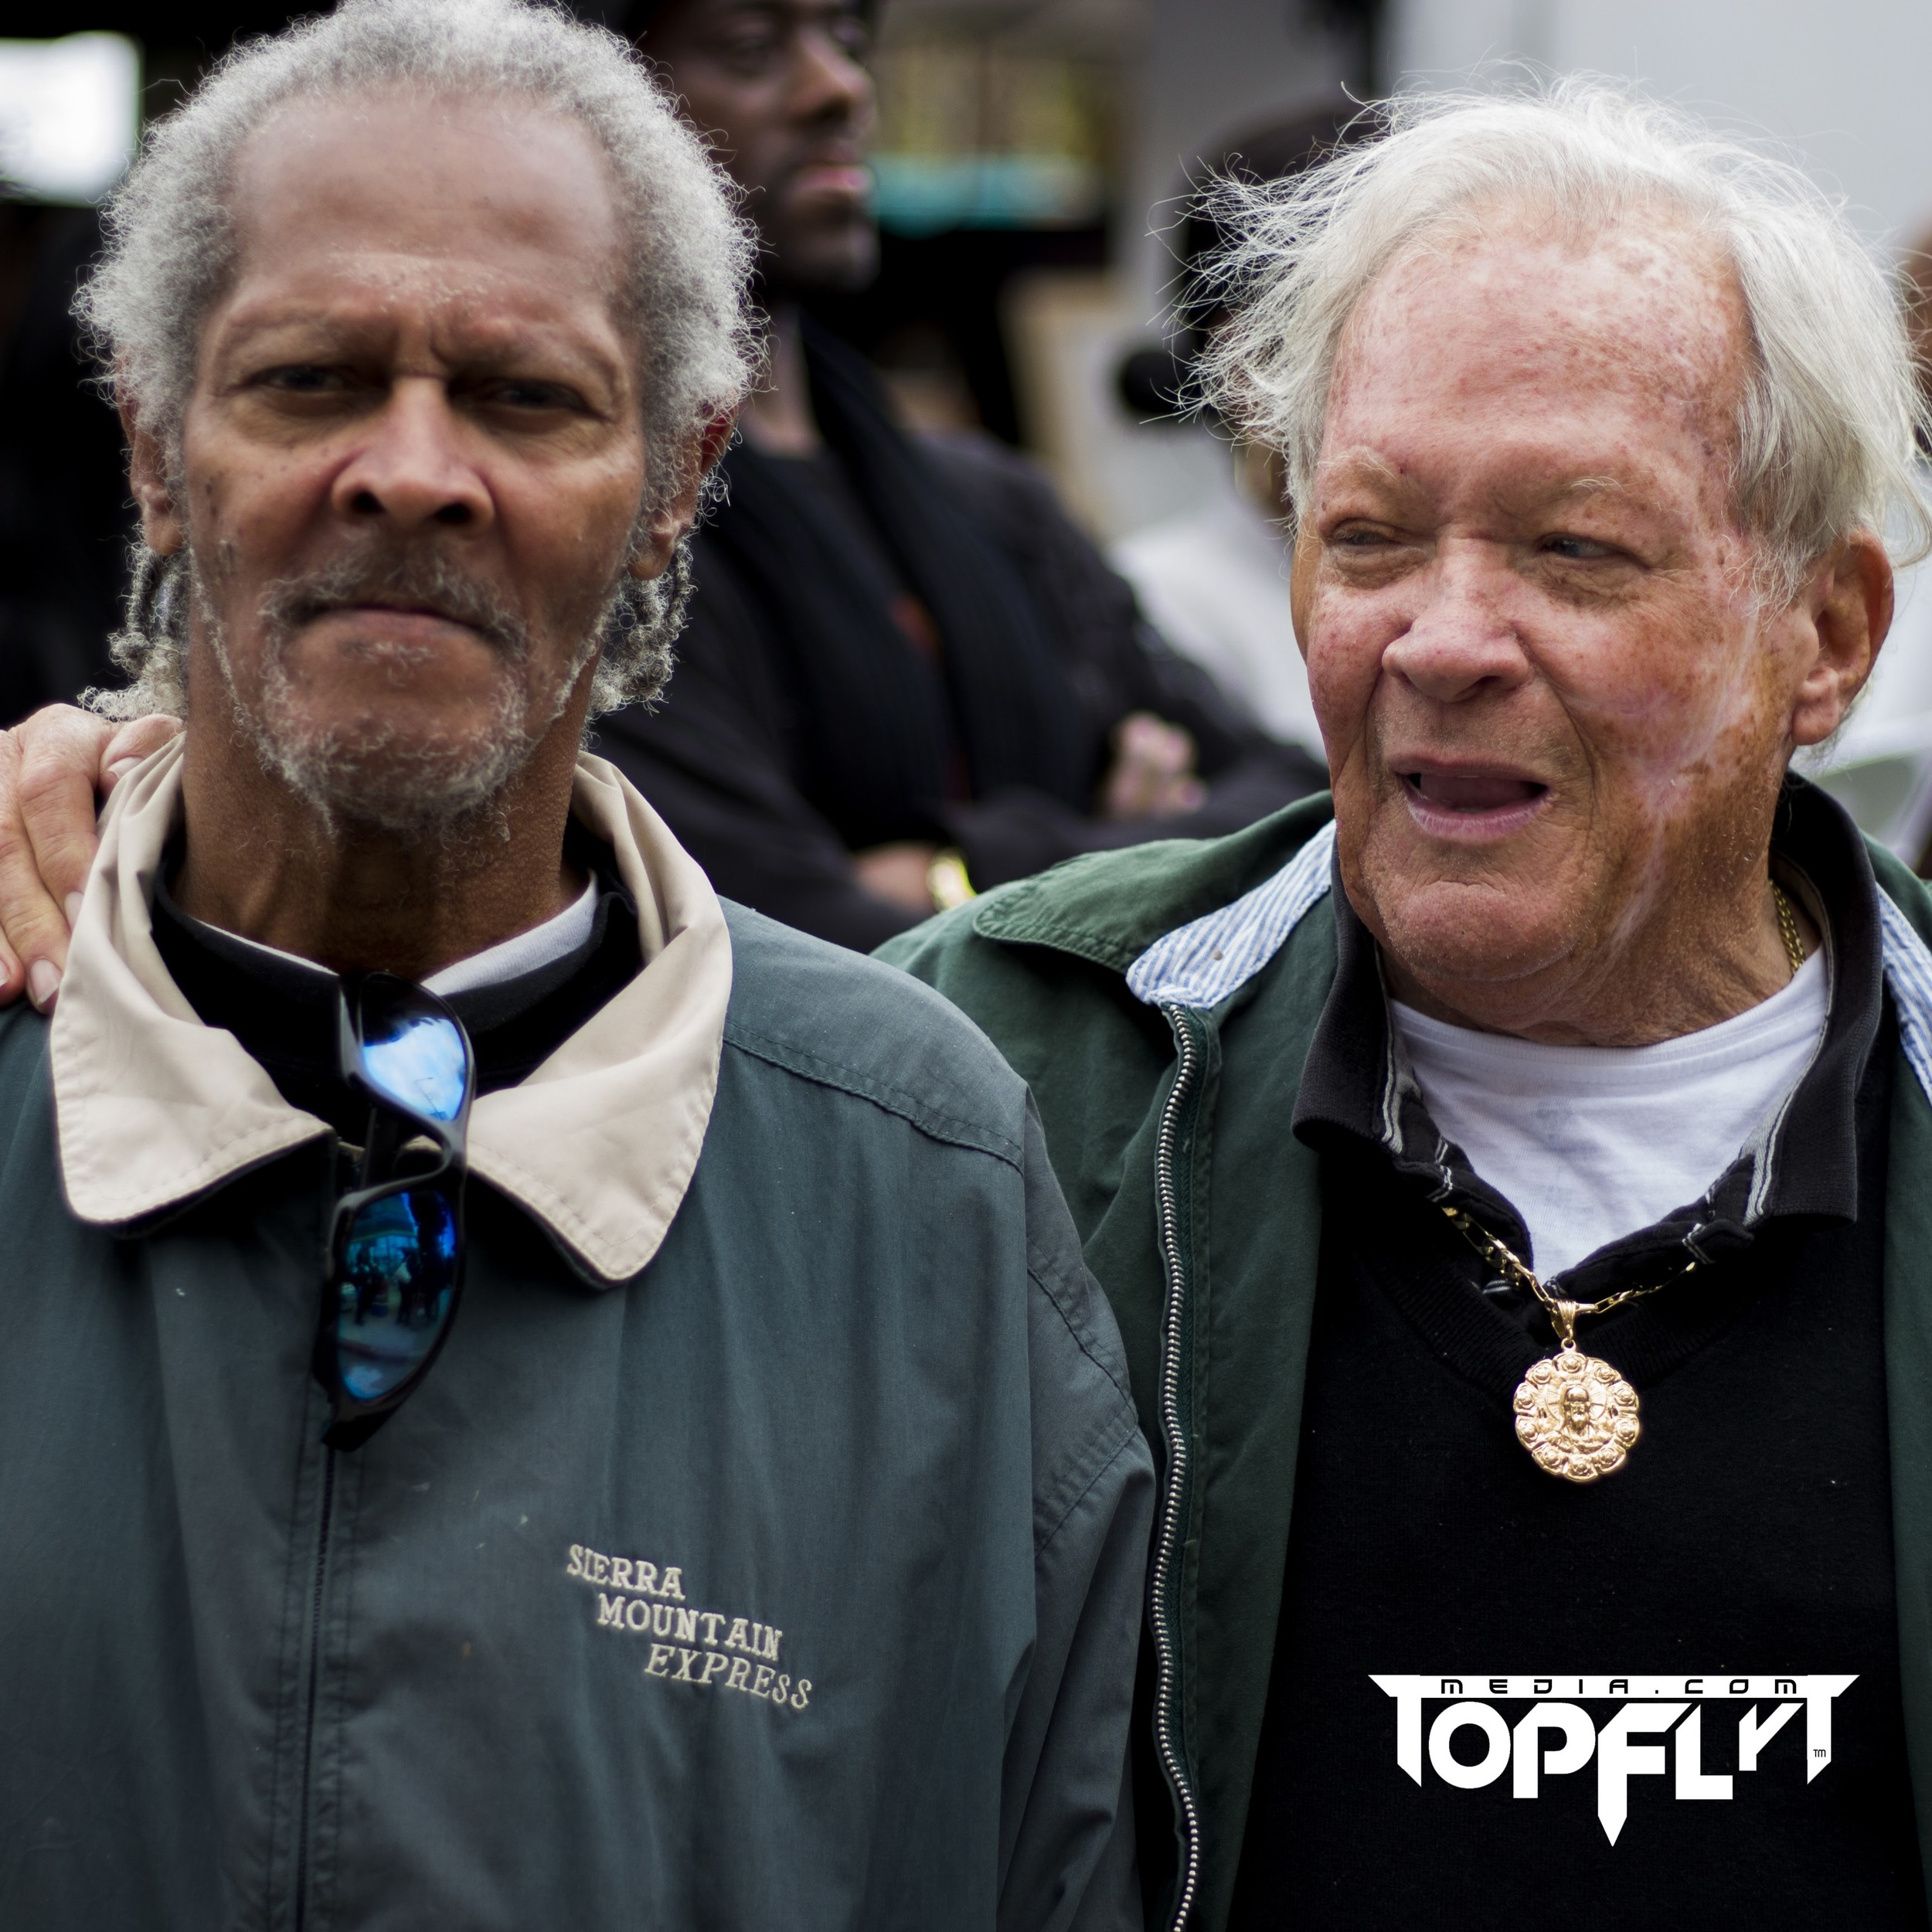 MLK Day Parade 2016. ©Dumisani Maraire Jr. for Top Flyt Media, LLC. All Rights Reserved.